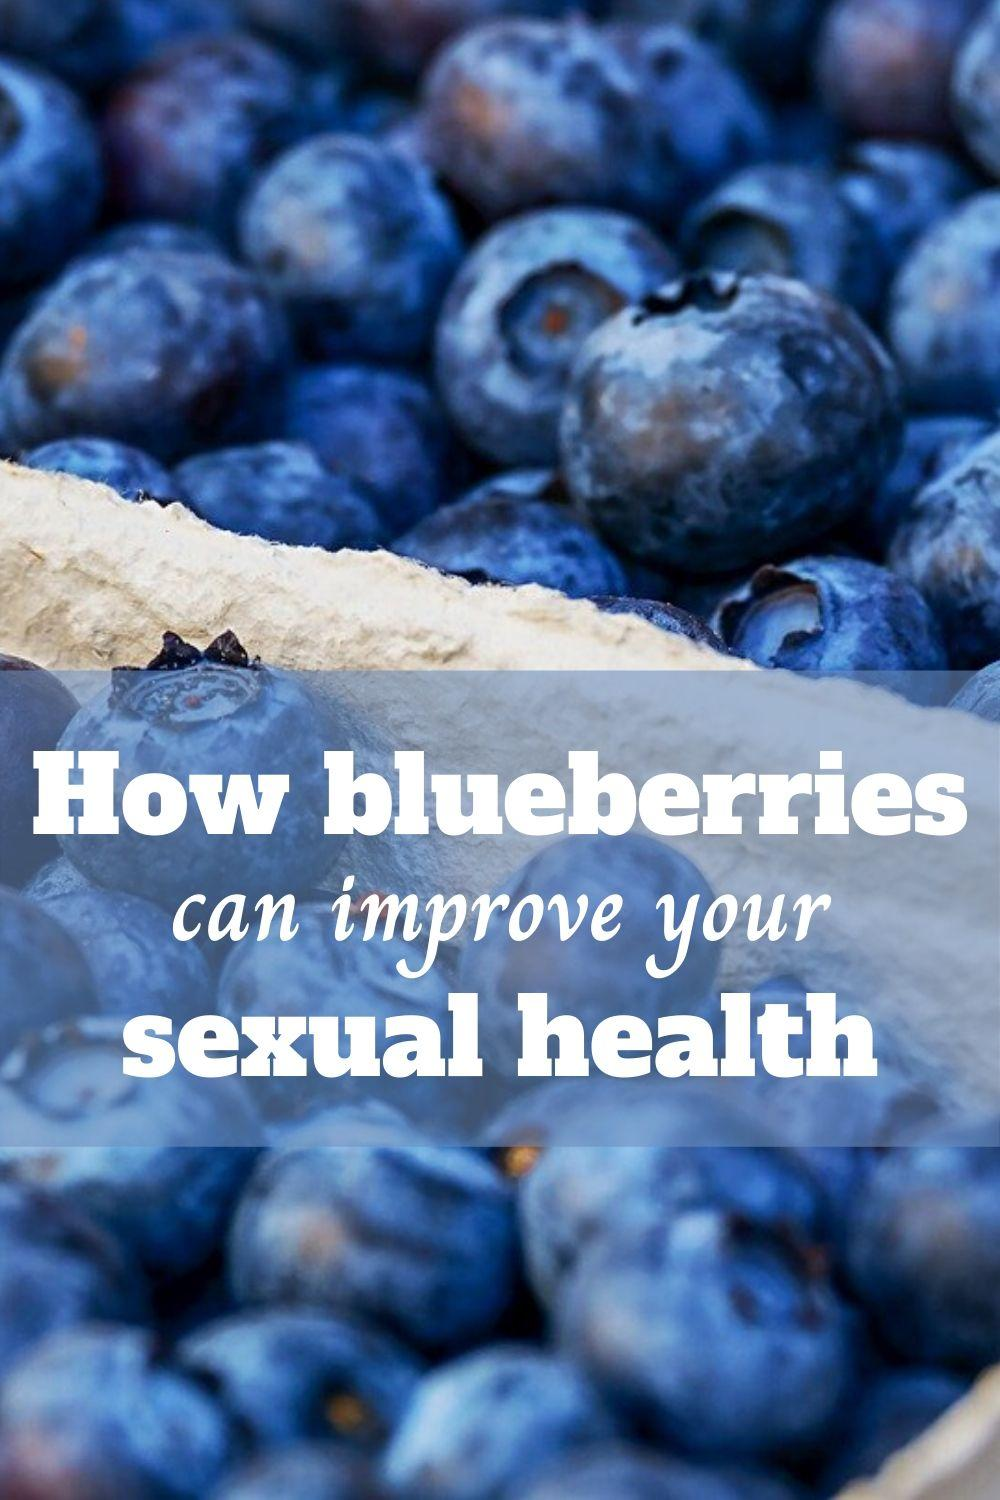 How blueberries can improve your sexual health